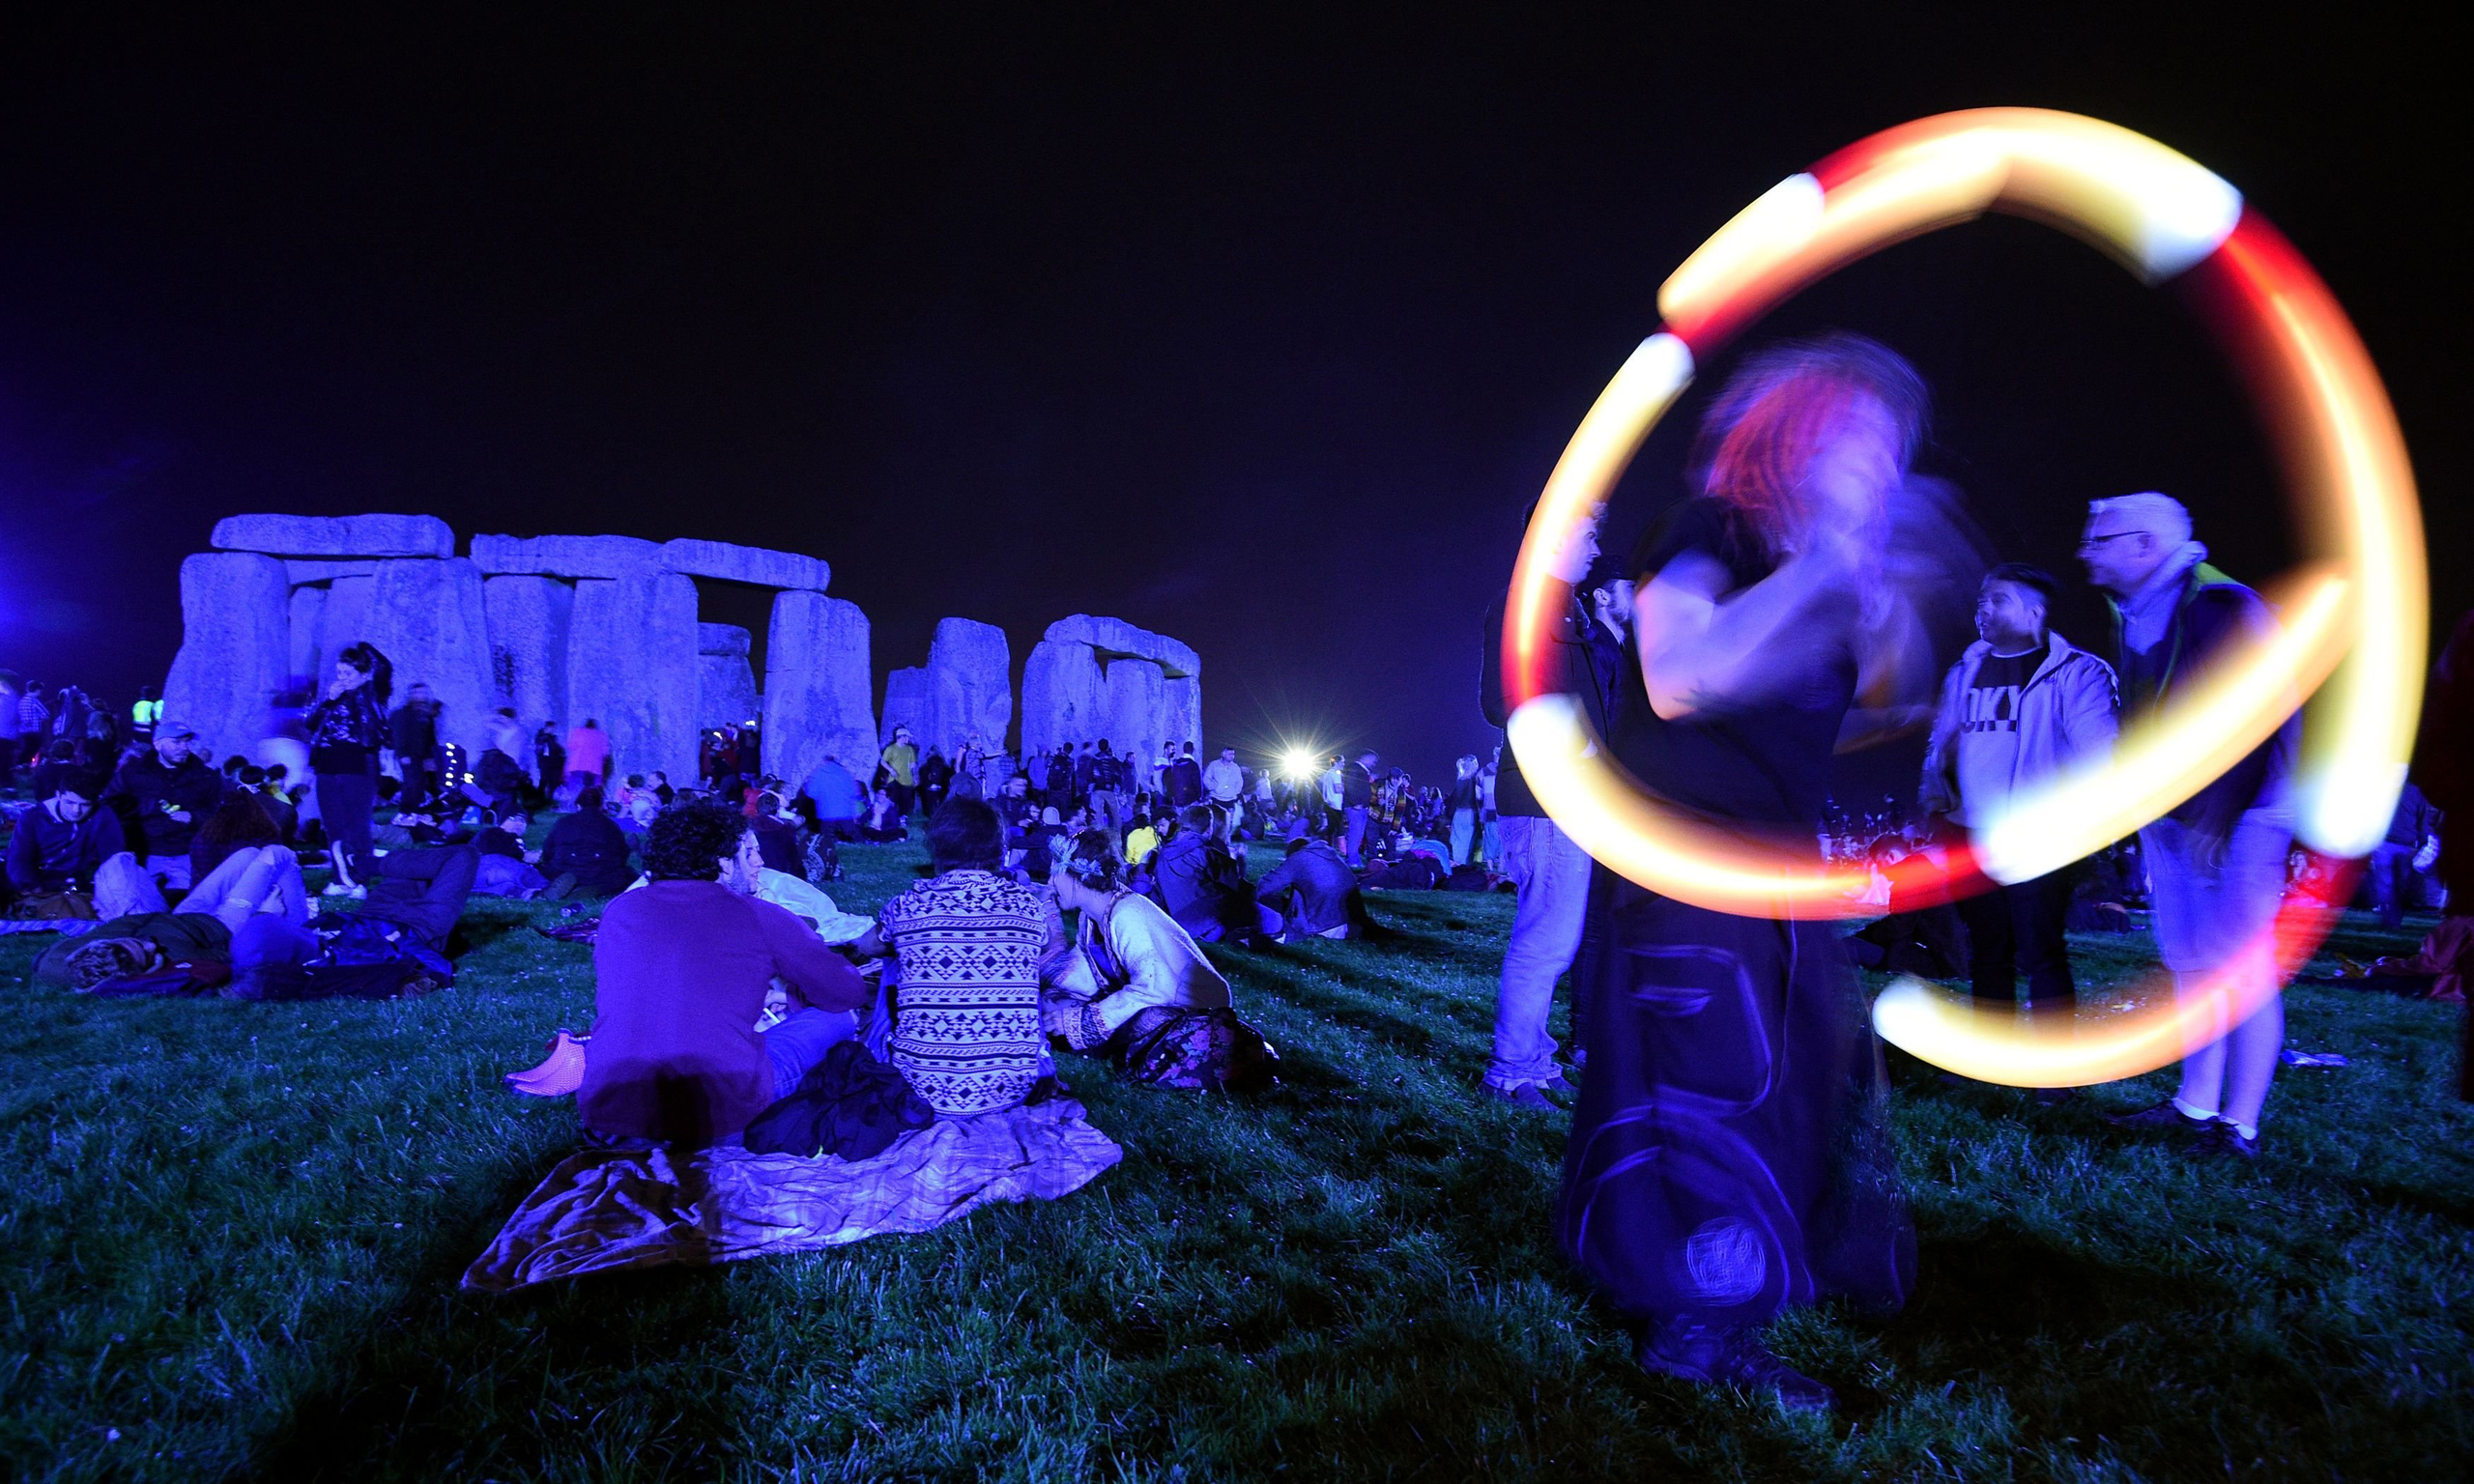 A poi performer spins light balls as people gather at Stonehenge in Wiltshire, England to see in the new dawn after this year's Summer Solstice on June 21, 2016.